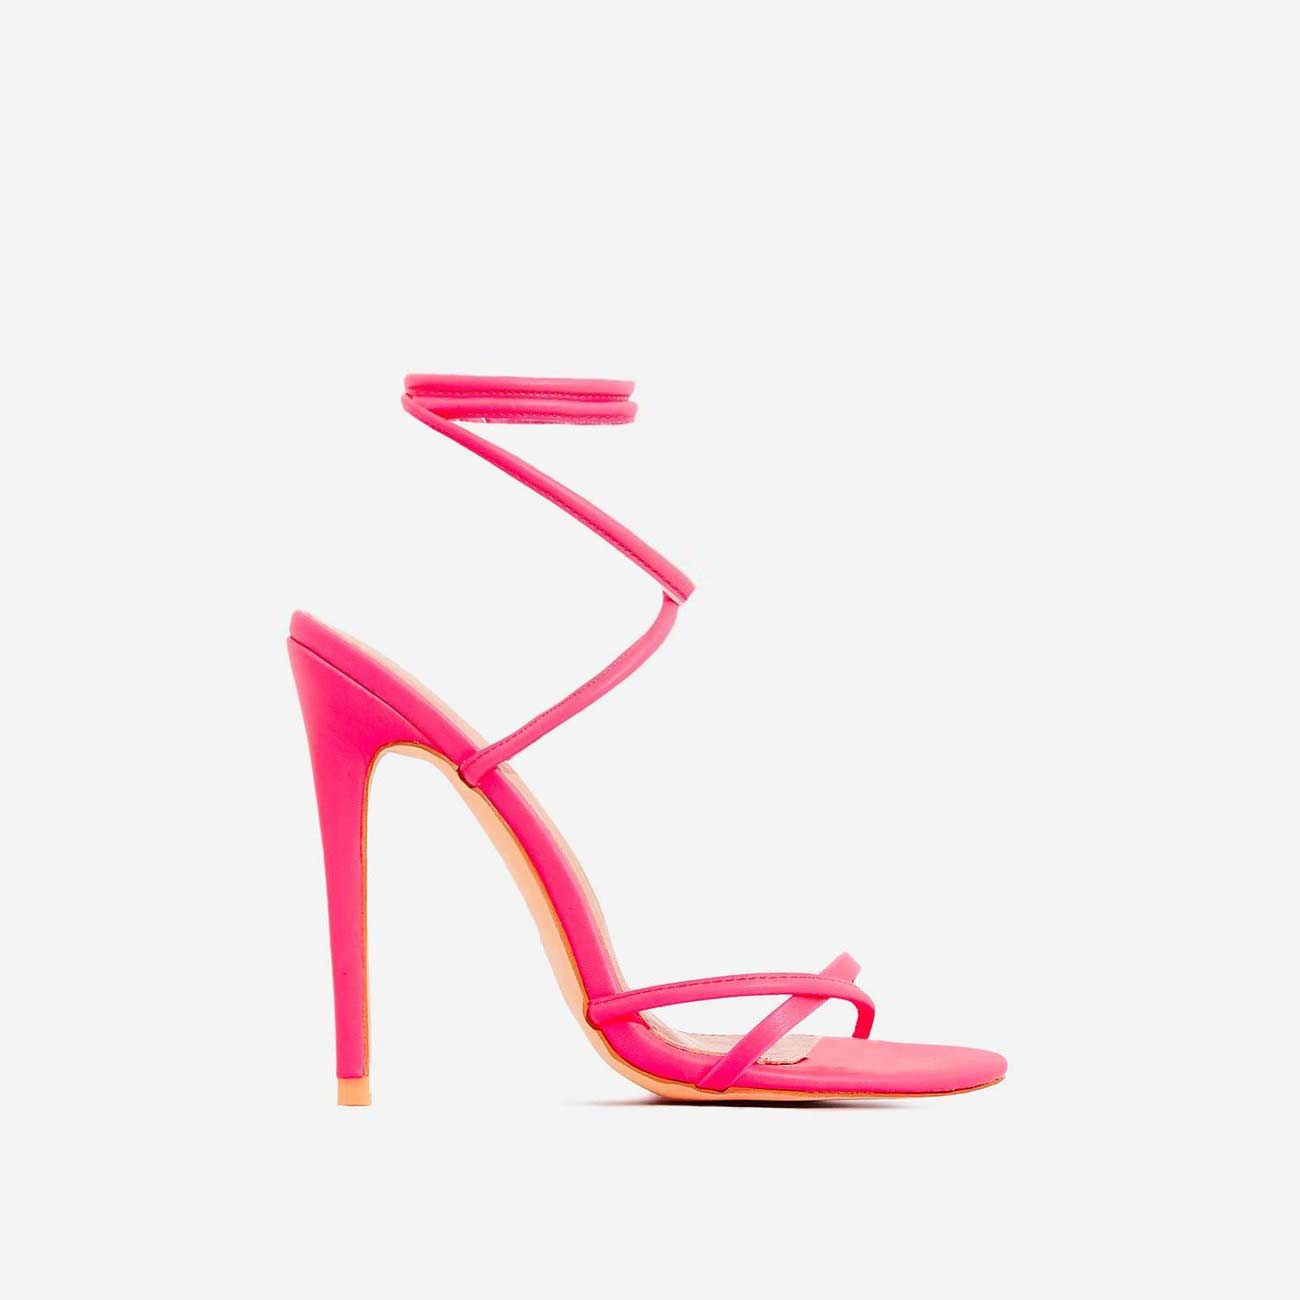 Rochelle Lace Up Barely There Heel In Neon Pink Faux Leather